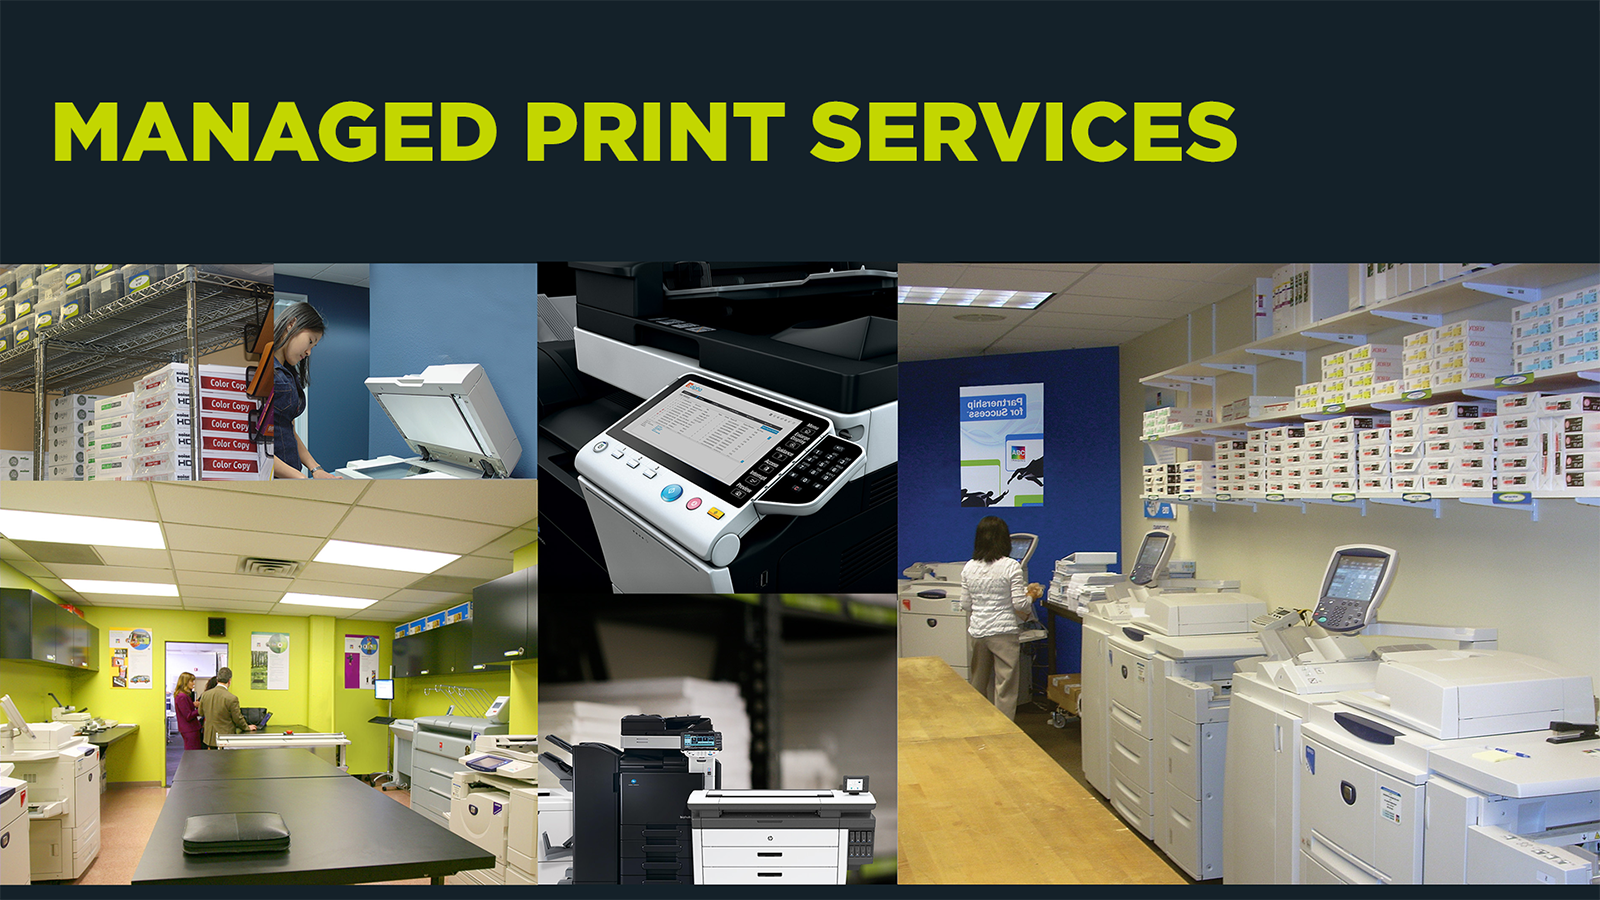 ABC IMAGING - MANAGED PRINT SERVICES